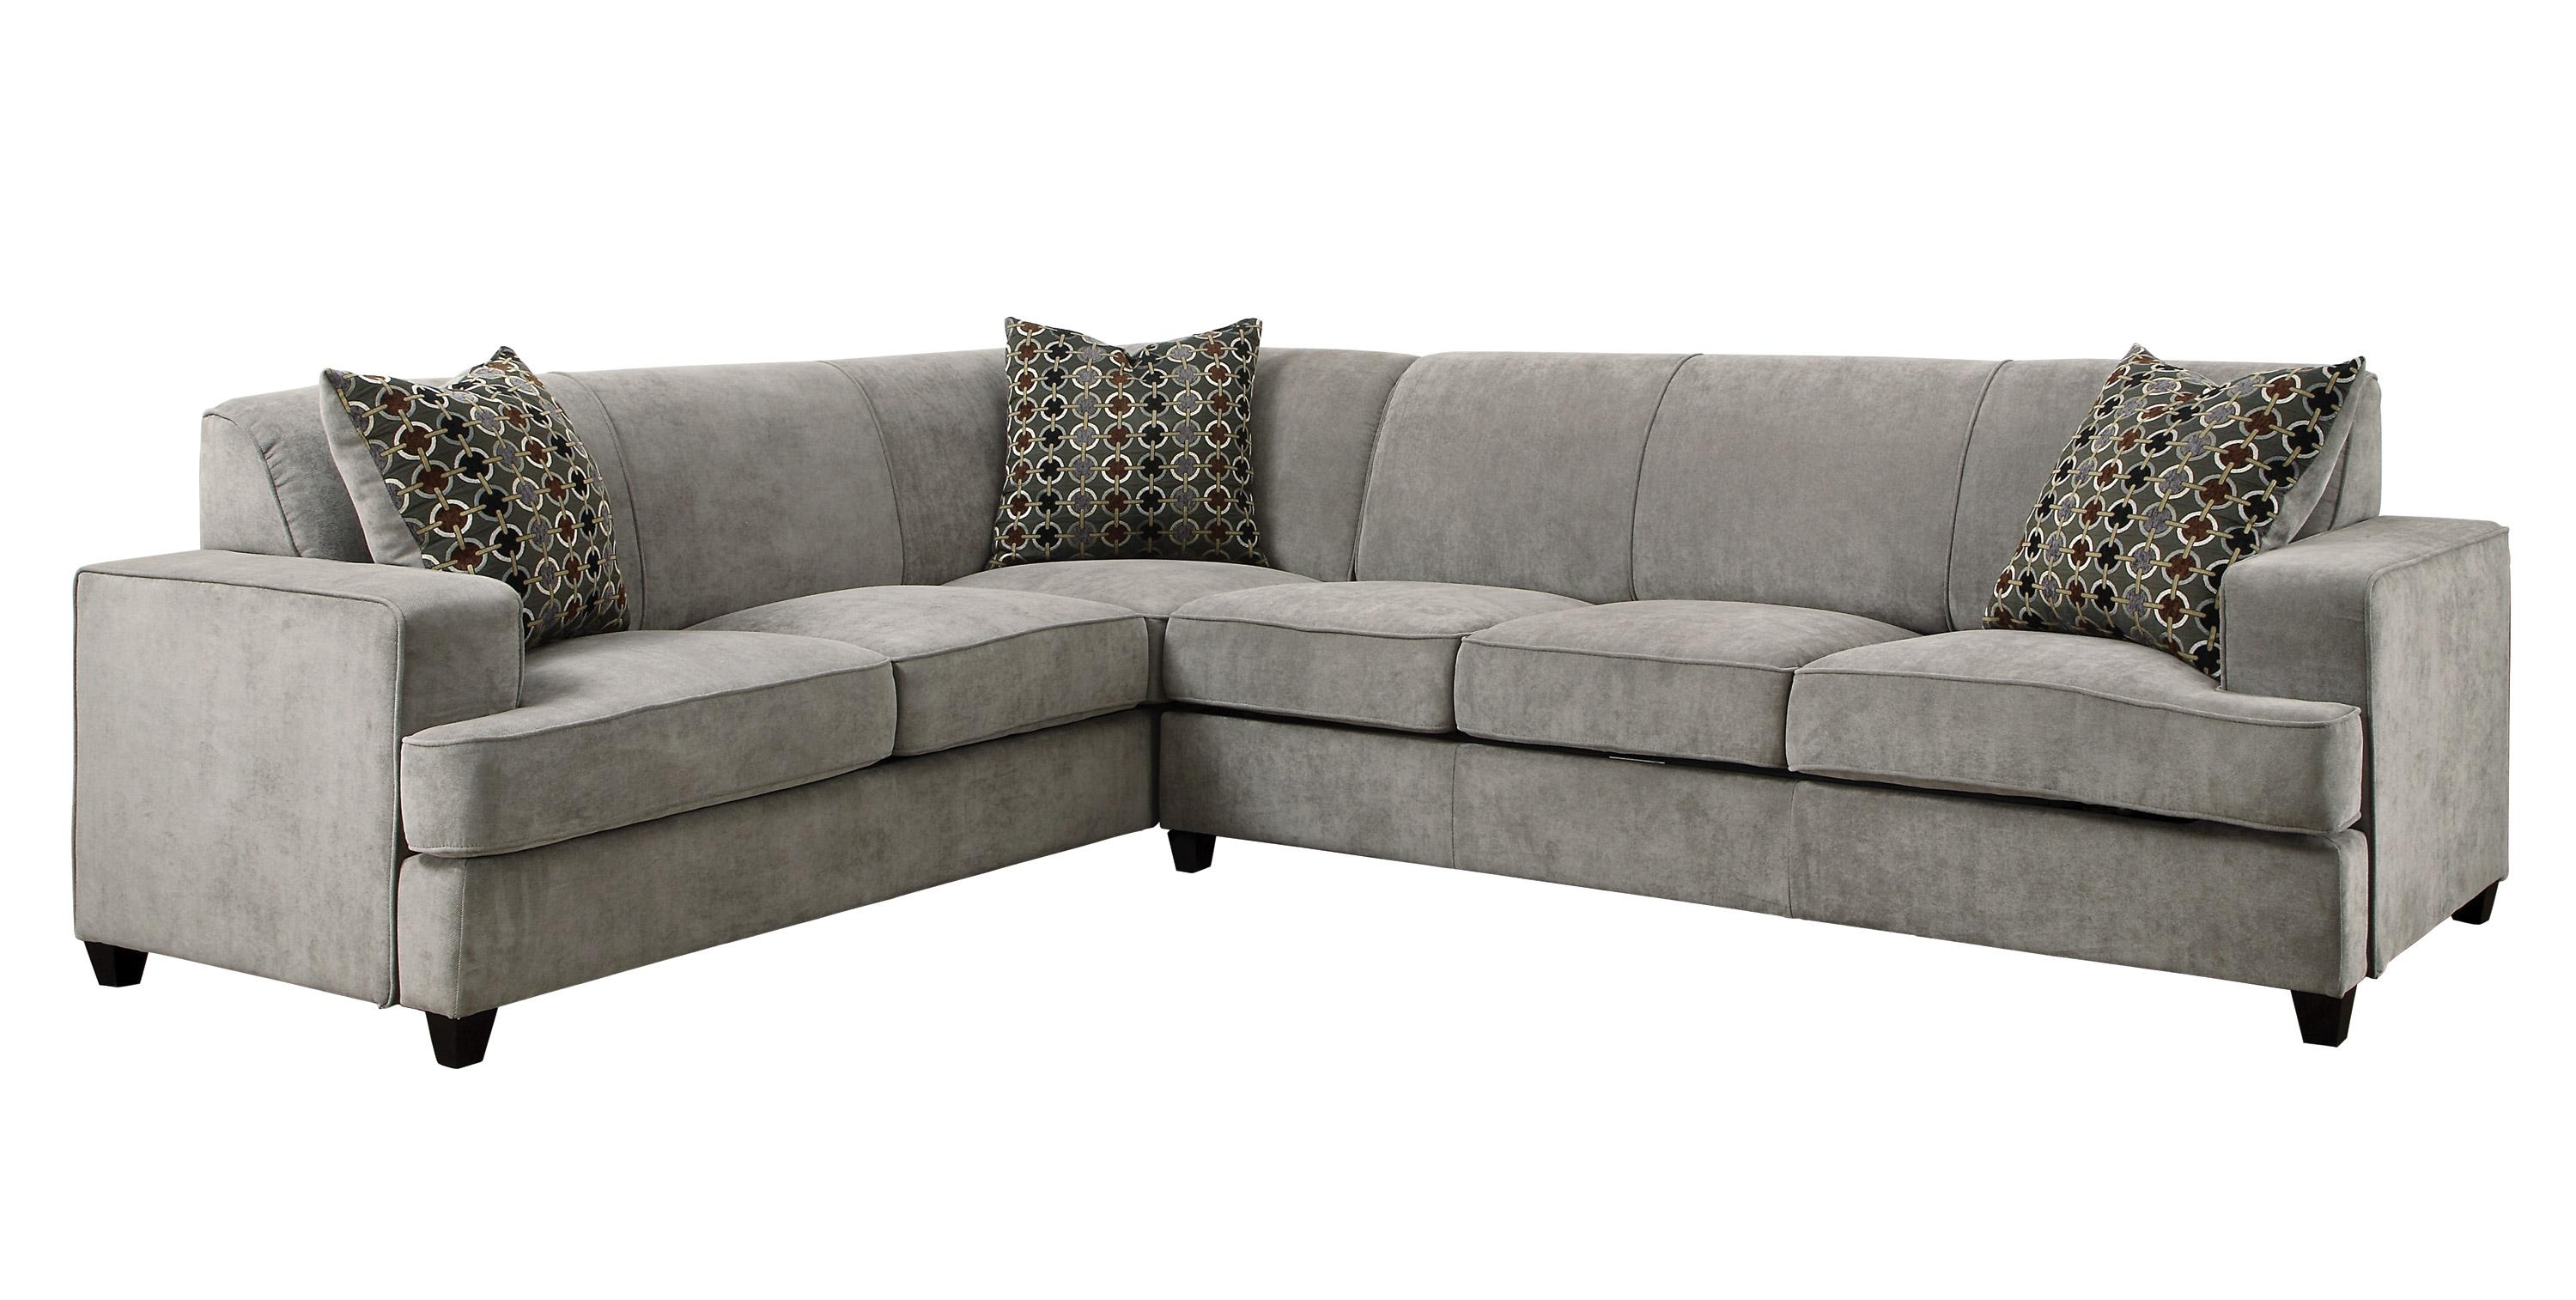 2018 Gallery Furniture Sectional Sofas In Sale: $ (View 1 of 20)